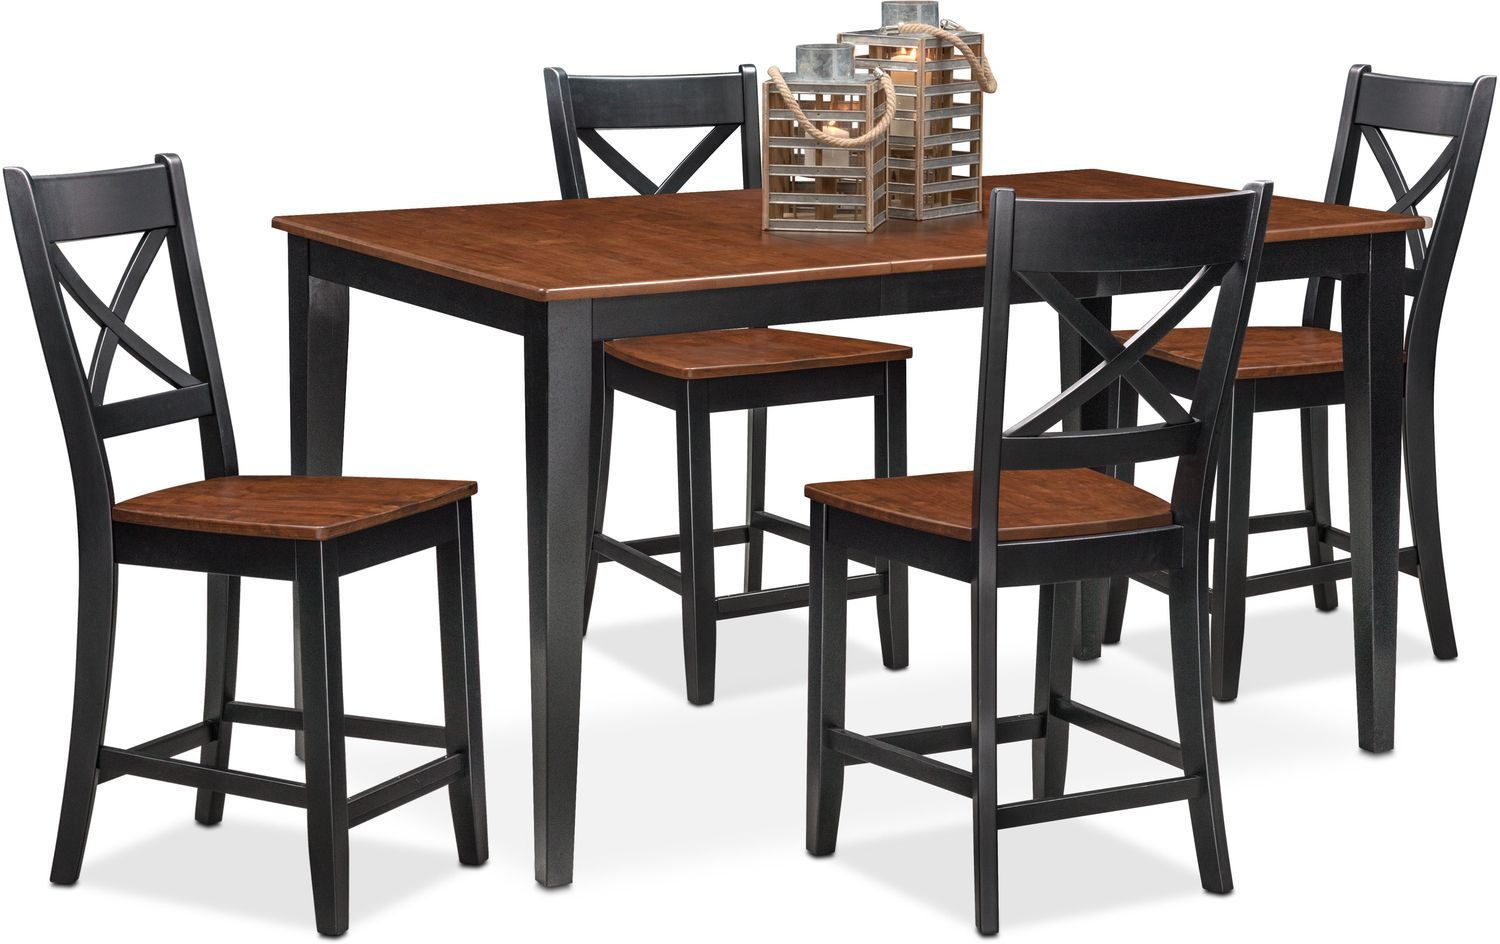 Nantucket counter height table and 4 side chairs black and cherry value city furniture and mattresses